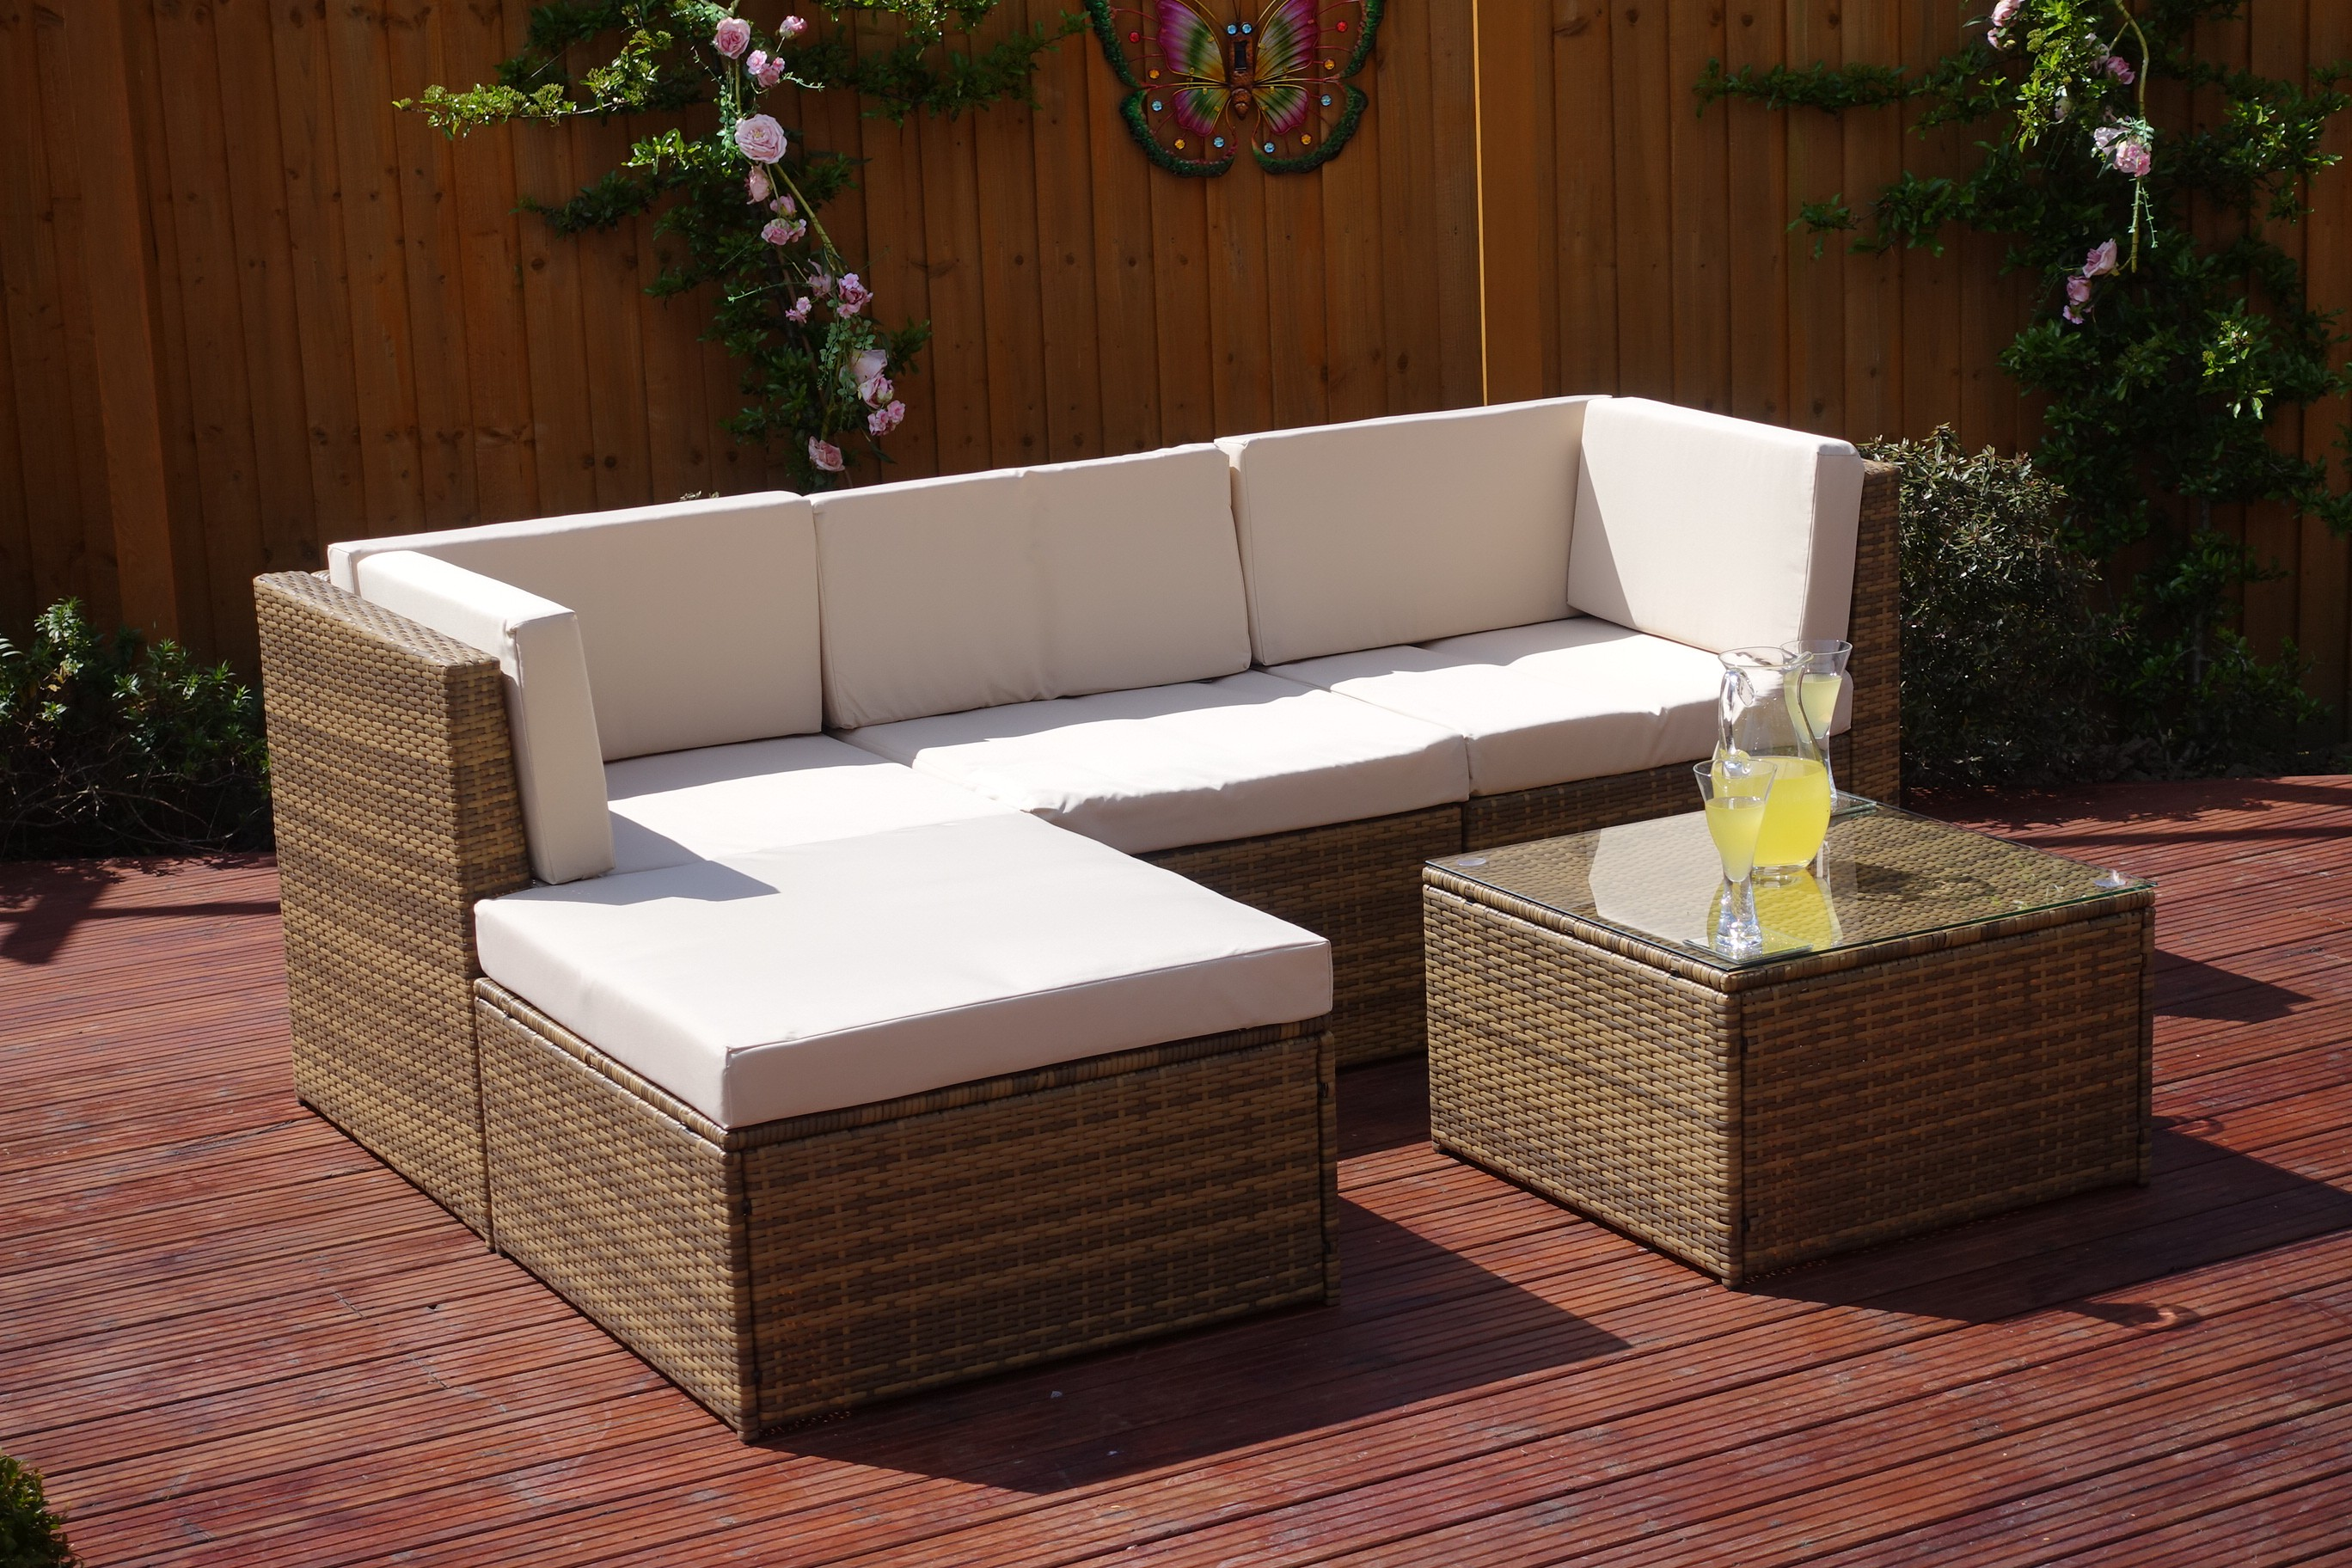 Florence 8 Piece Rattan Sofa Set With Cushions Milano Rattan 5 Piece Corner Sofa In Brown Or Black Abreo